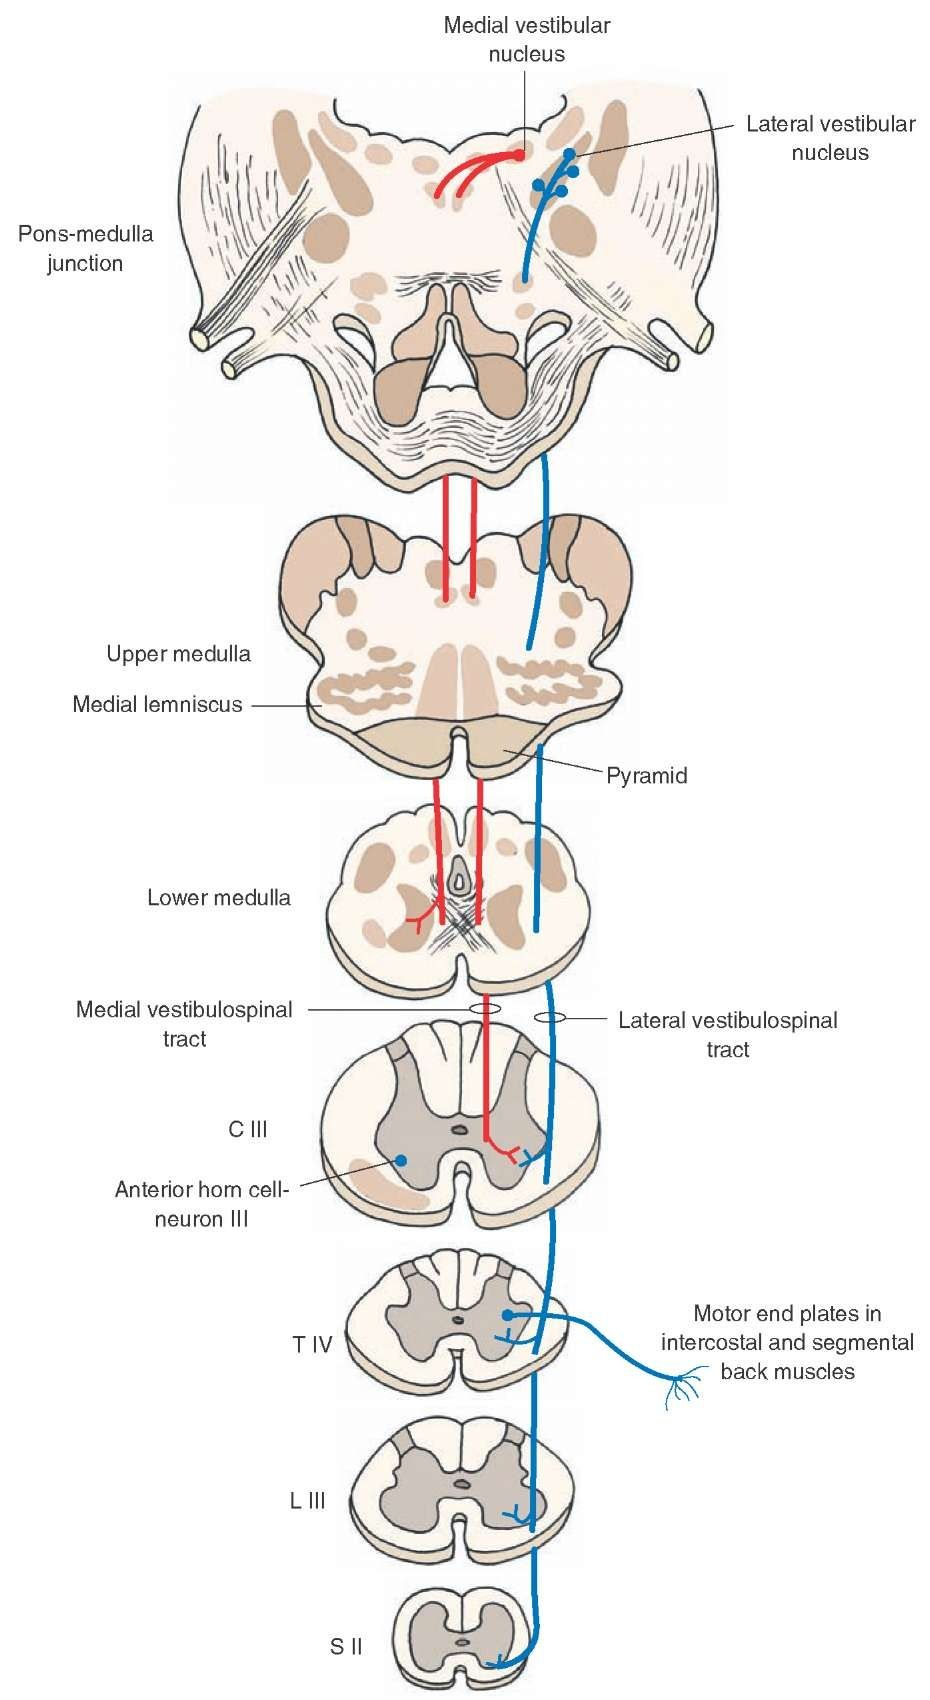 hight resolution of vestibulospinal tracts nervous system parts nervous system anatomy central nervous system brain anatomy